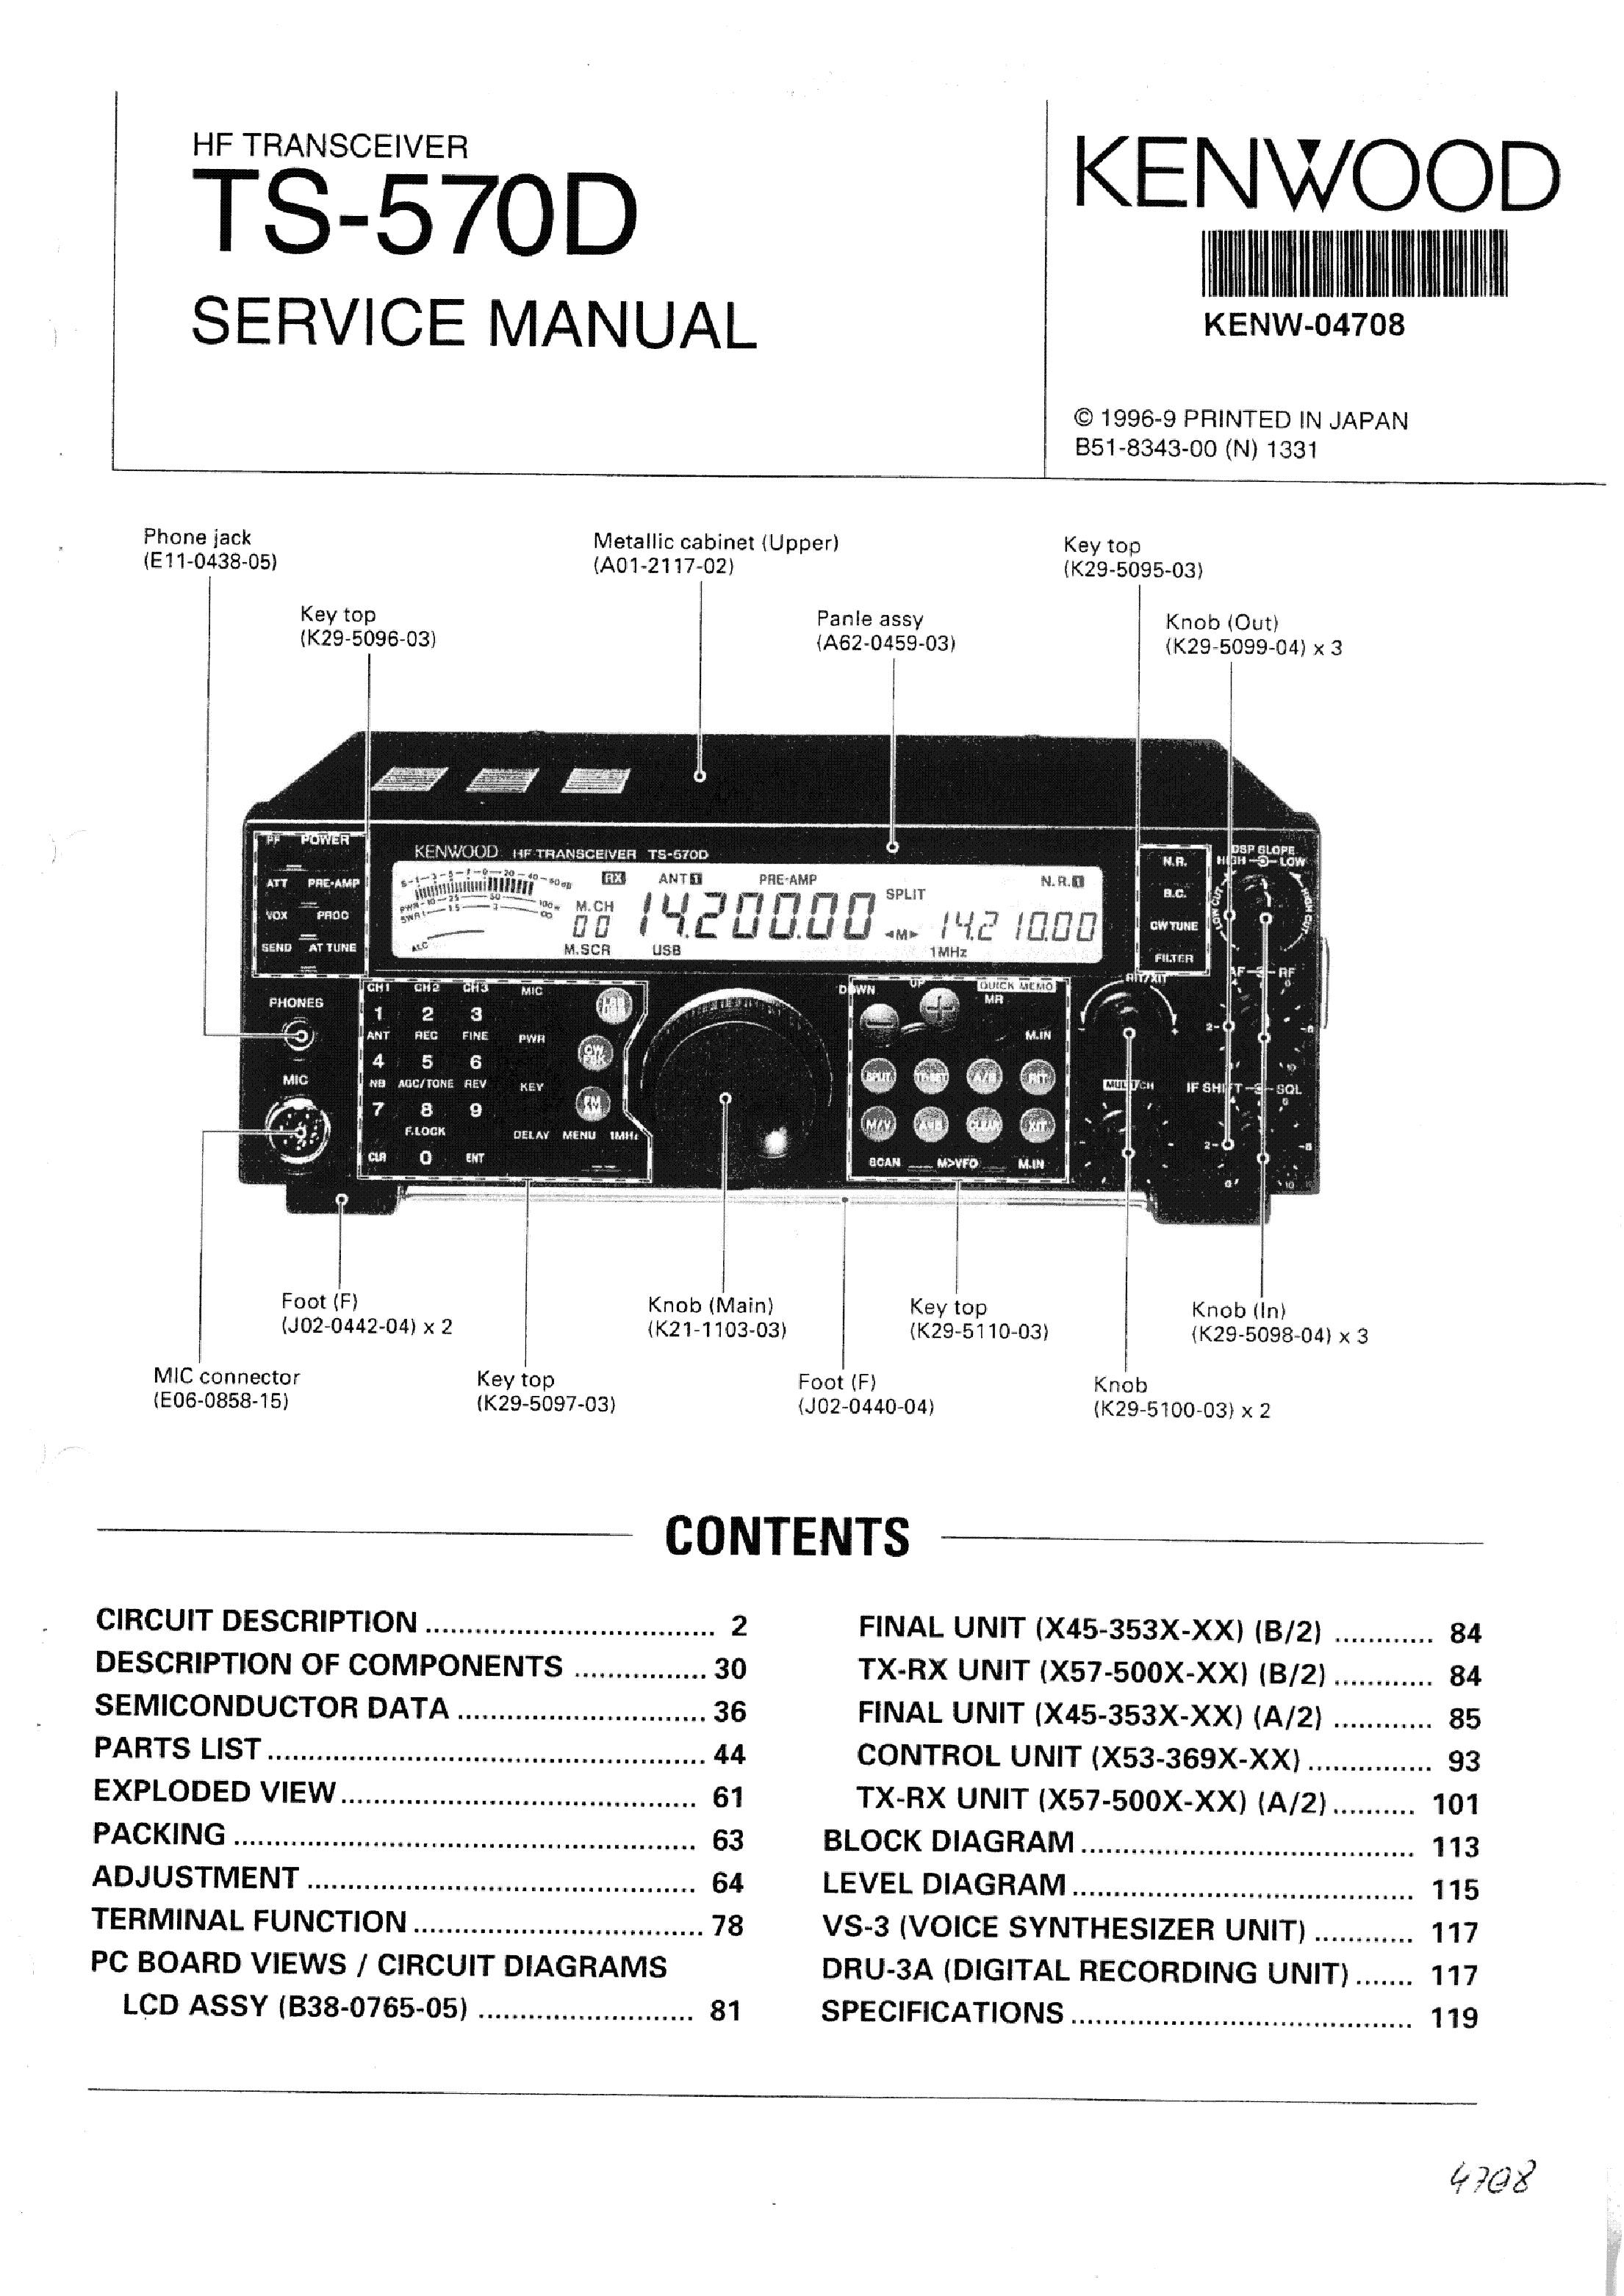 KENWOOD TS-570D service manual (1st page)